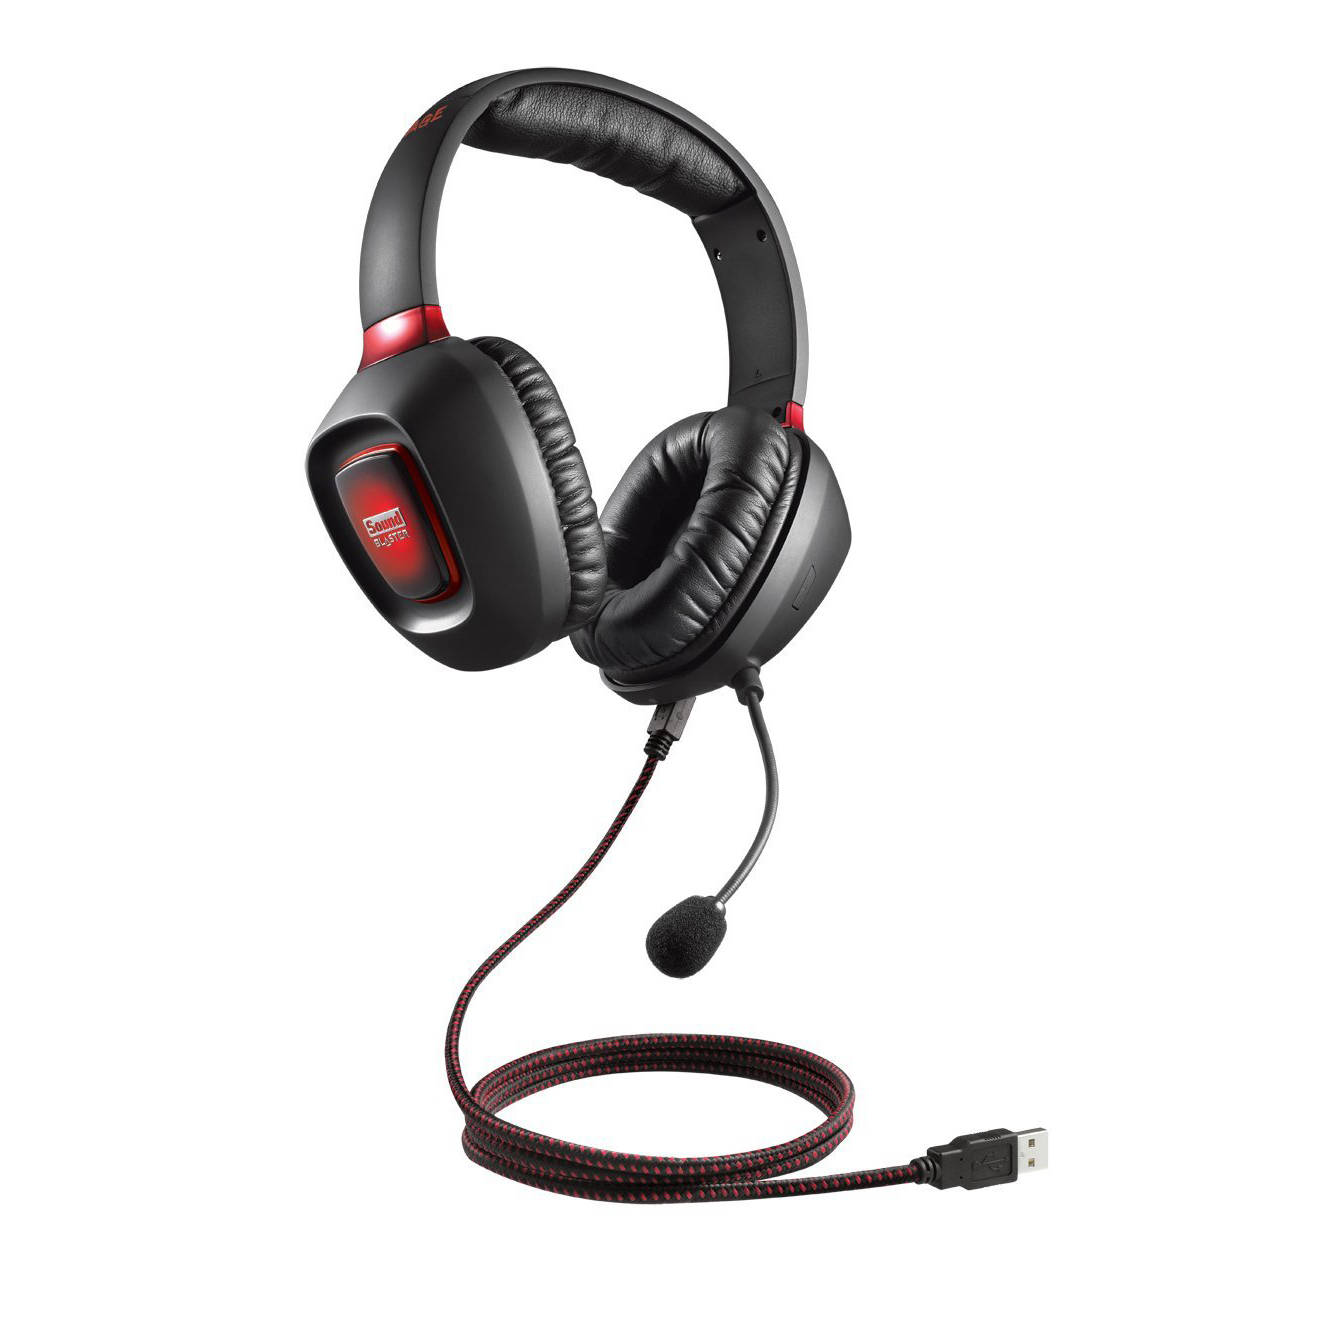 Creative Sound Blaster Tactic3D Rage USB Headset Update